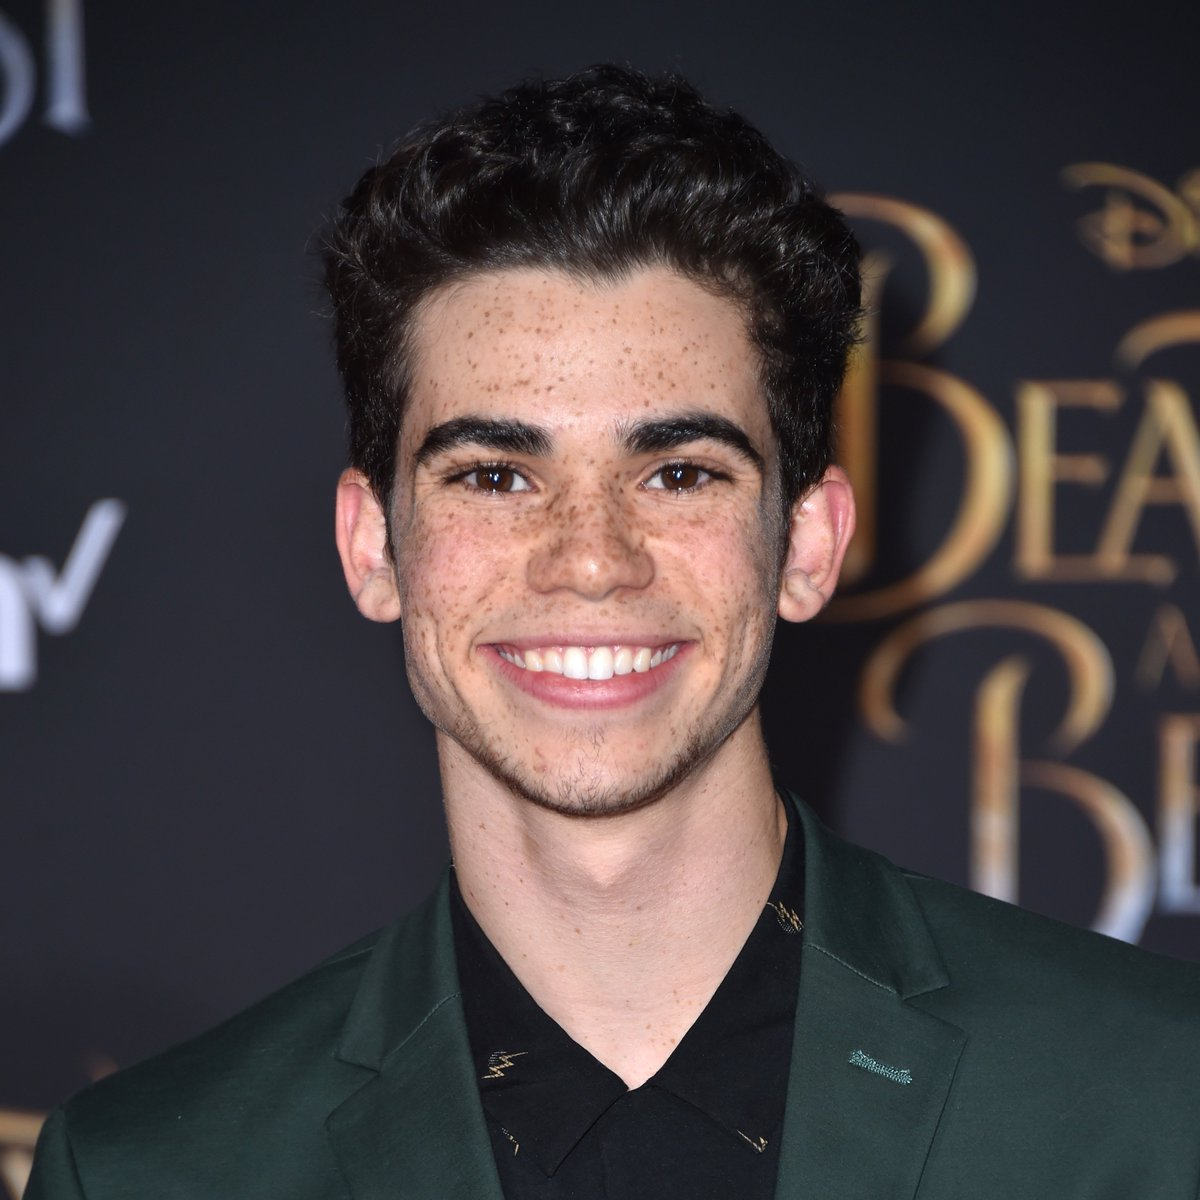 Remembering the late Cameron Boyce on the one year anniversary of his death ❤️ Rest in peace Cameron🕊